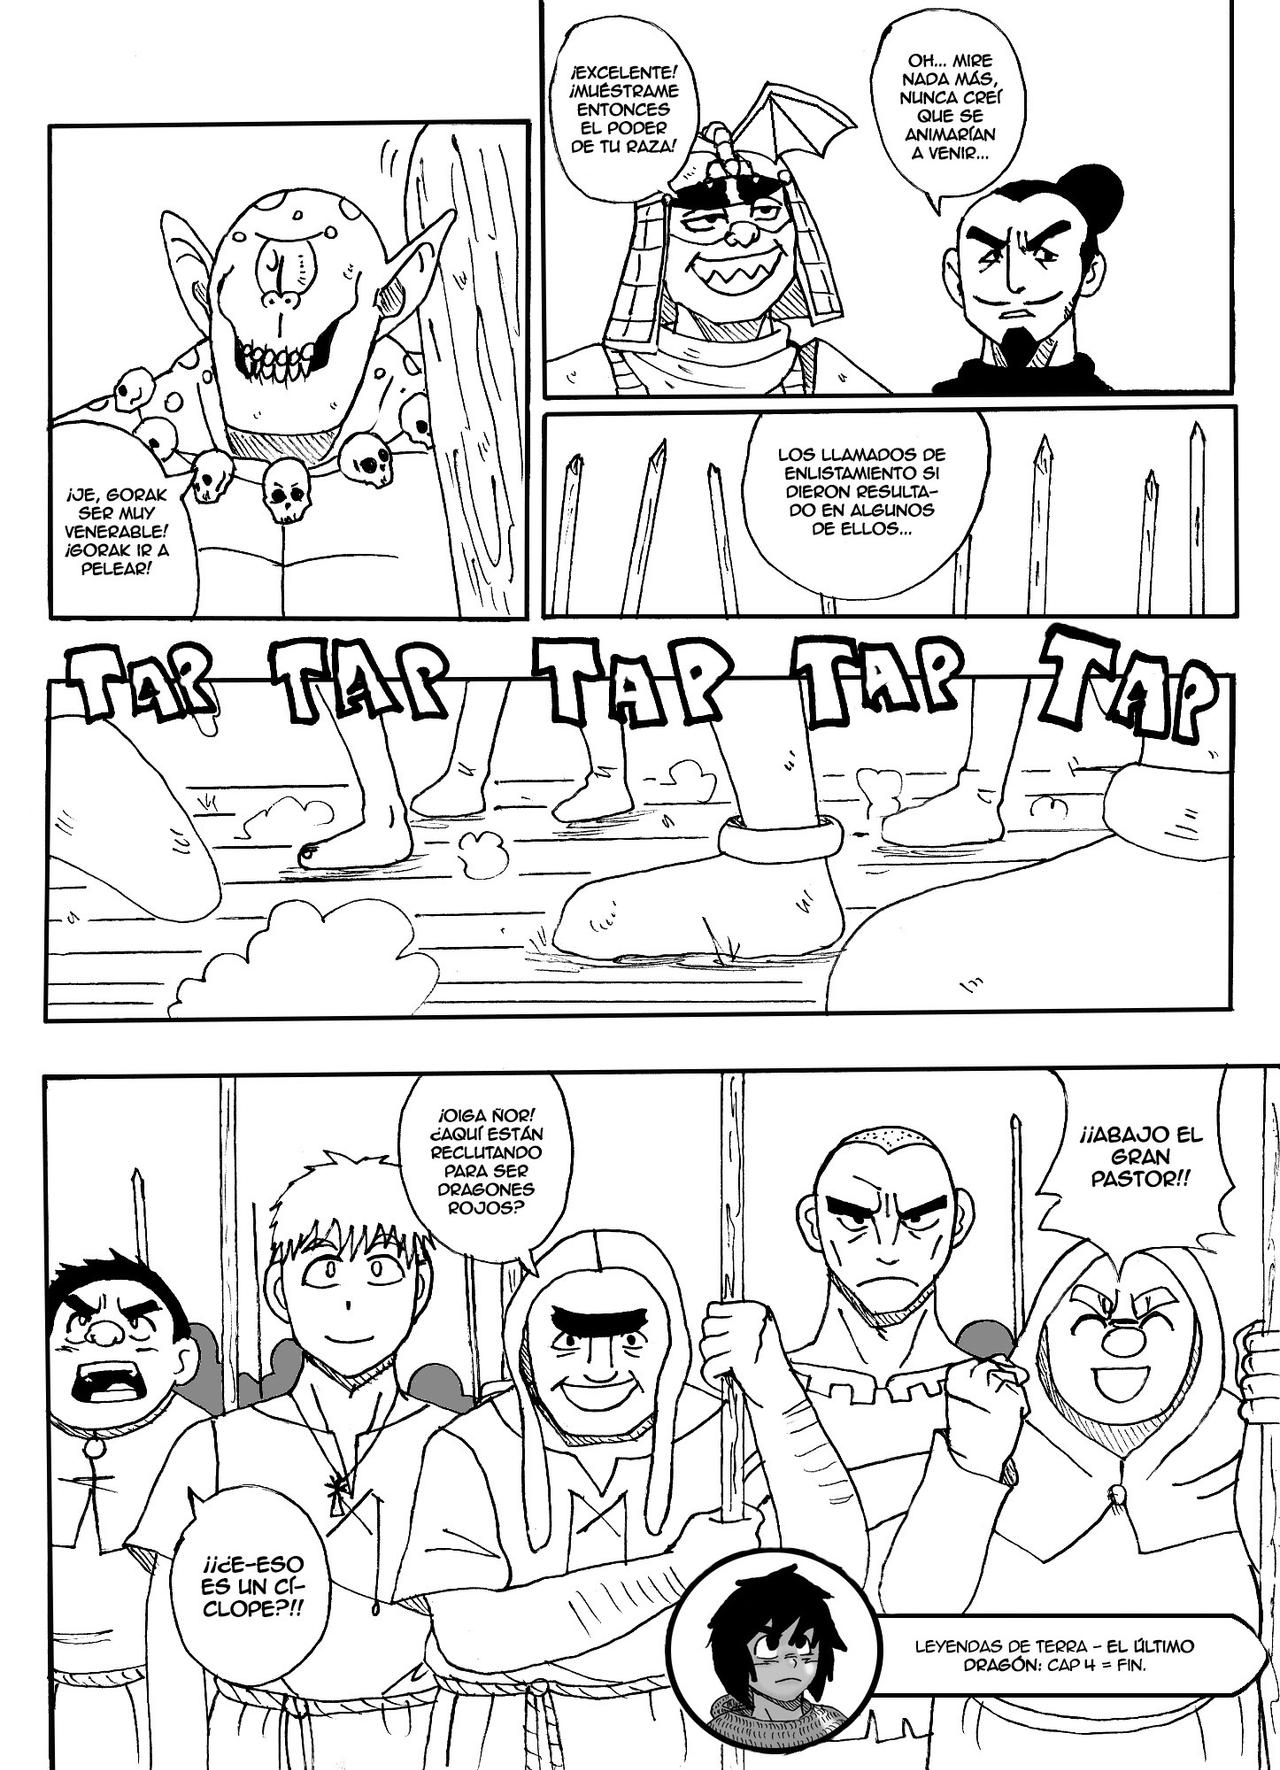 Ultimo dragon - Cap 4 - Pag 19 by cancertz on DeviantArt